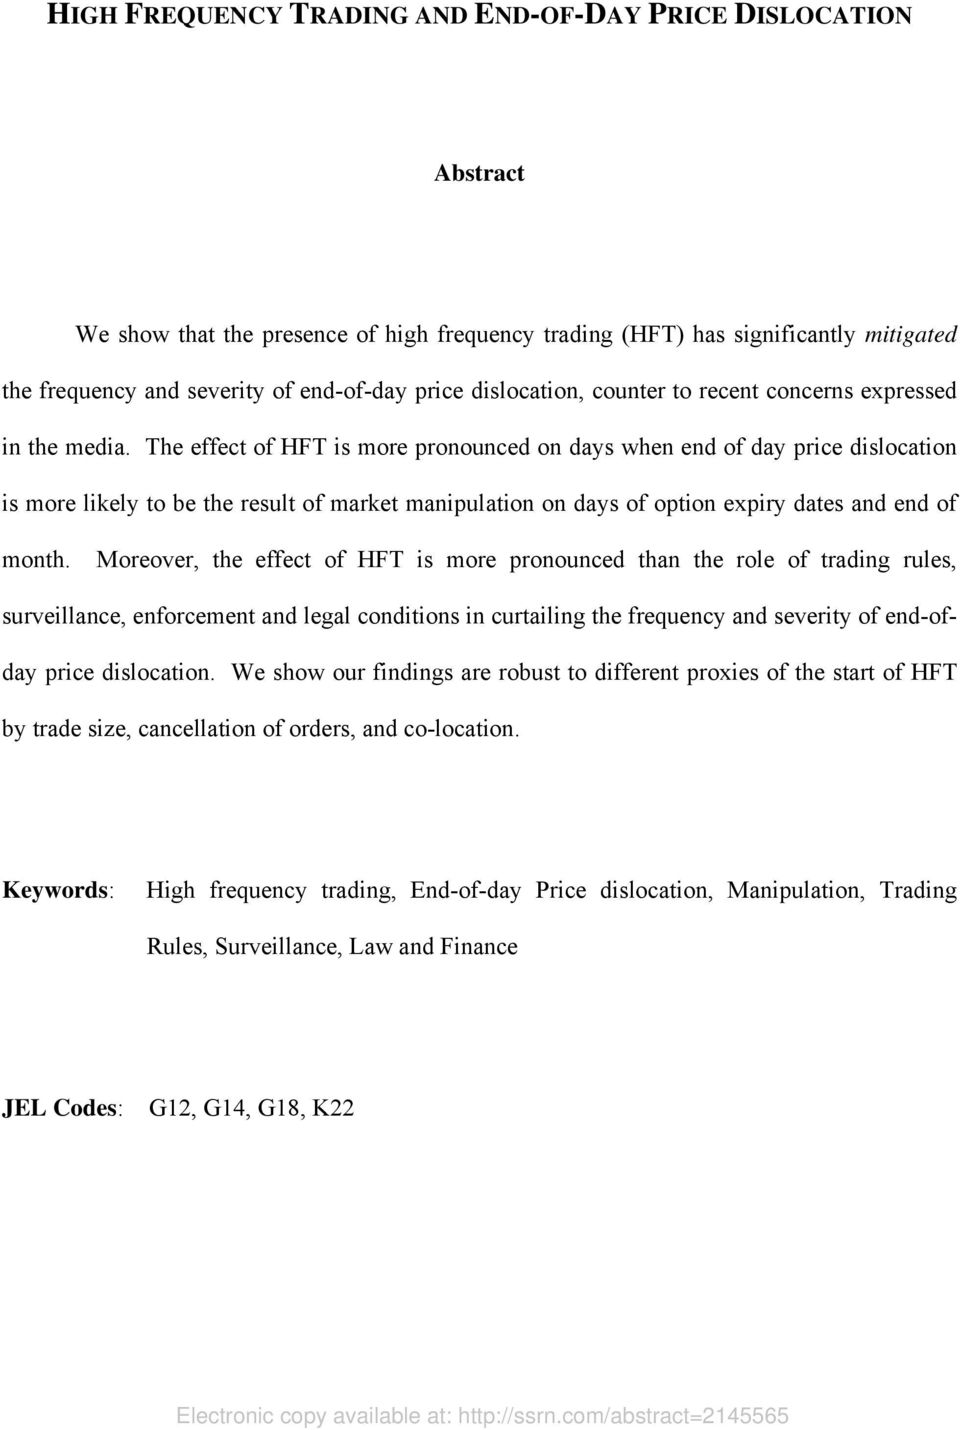 The effect of HFT is more pronounced on days when end of day price dislocation is more likely to be the result of market manipulation on days of option expiry dates and end of month.